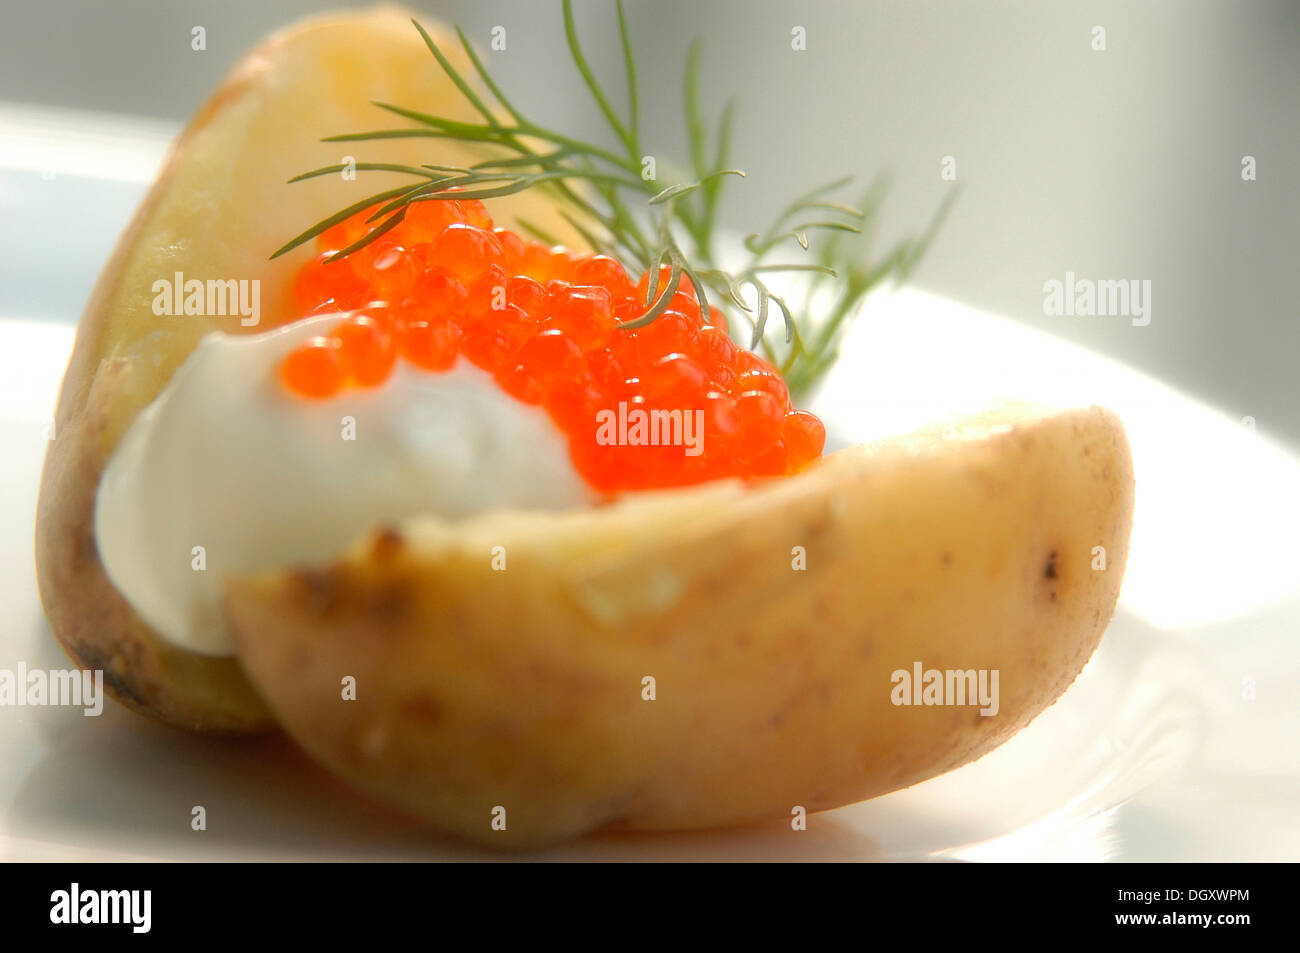 Baked potato with caviar and dill - Stock Image